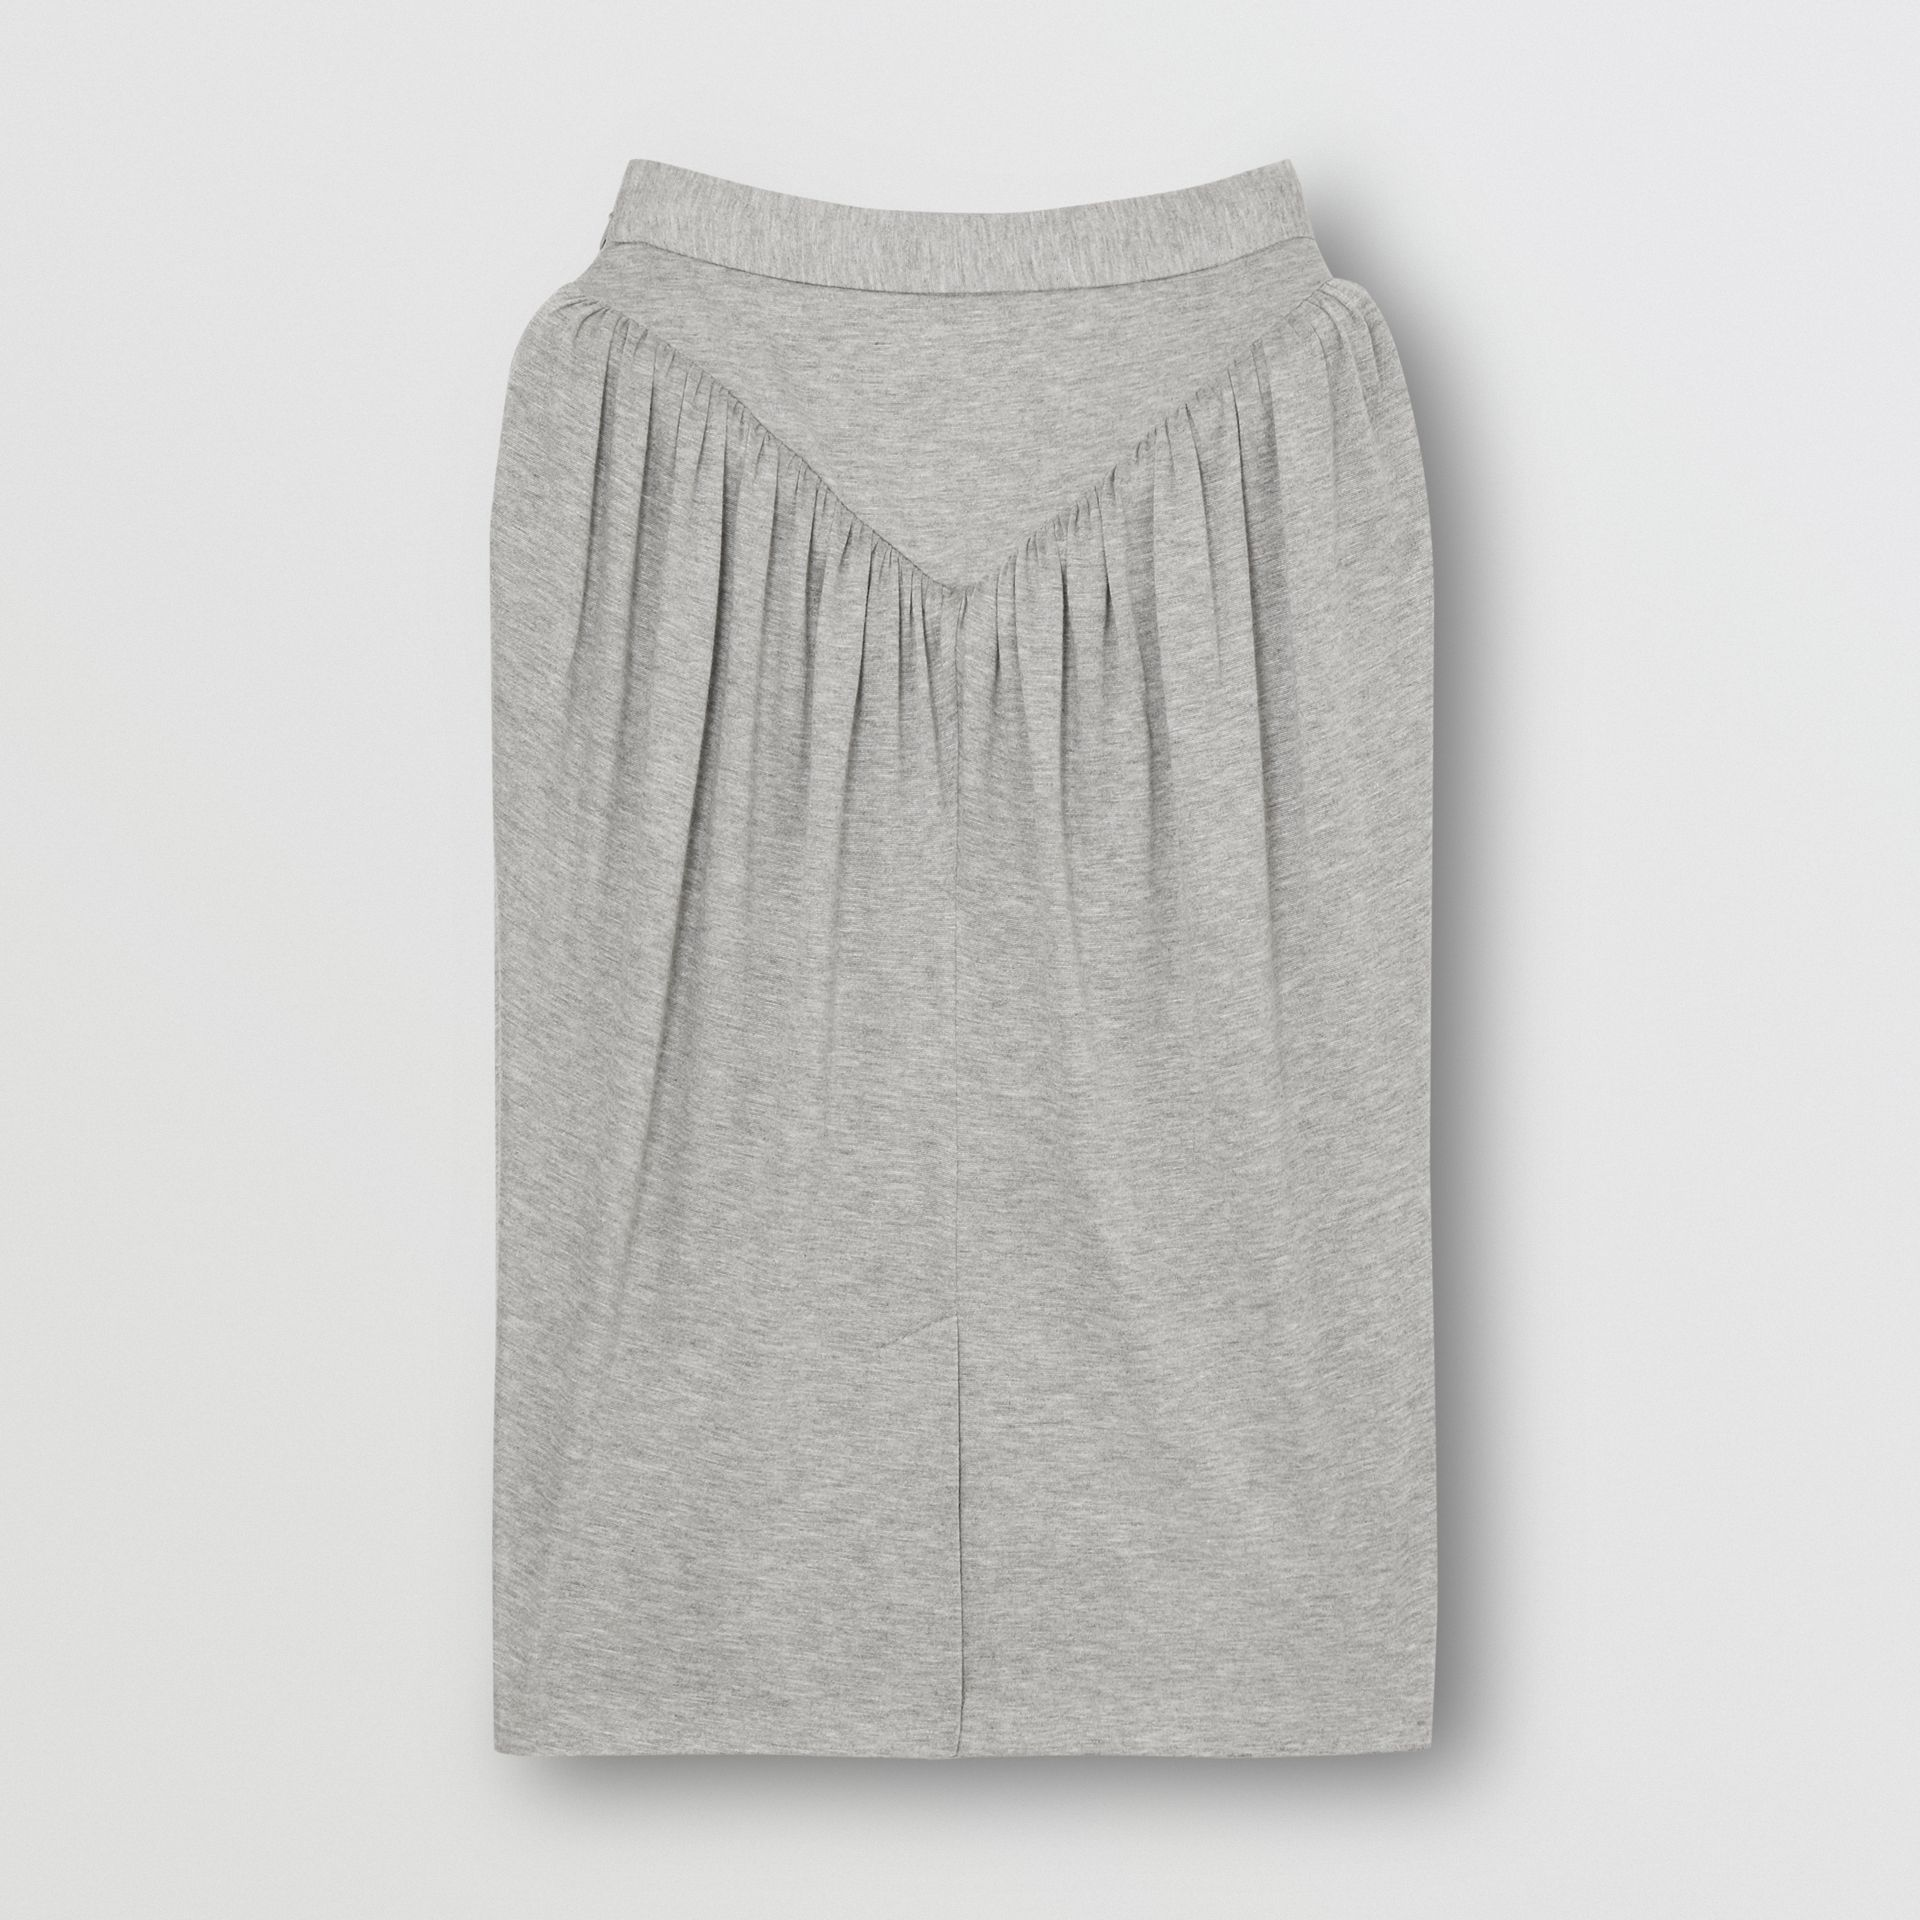 Gathered Jersey Sculptural Skirt in Pewter Melange - Women | Burberry United States - gallery image 3